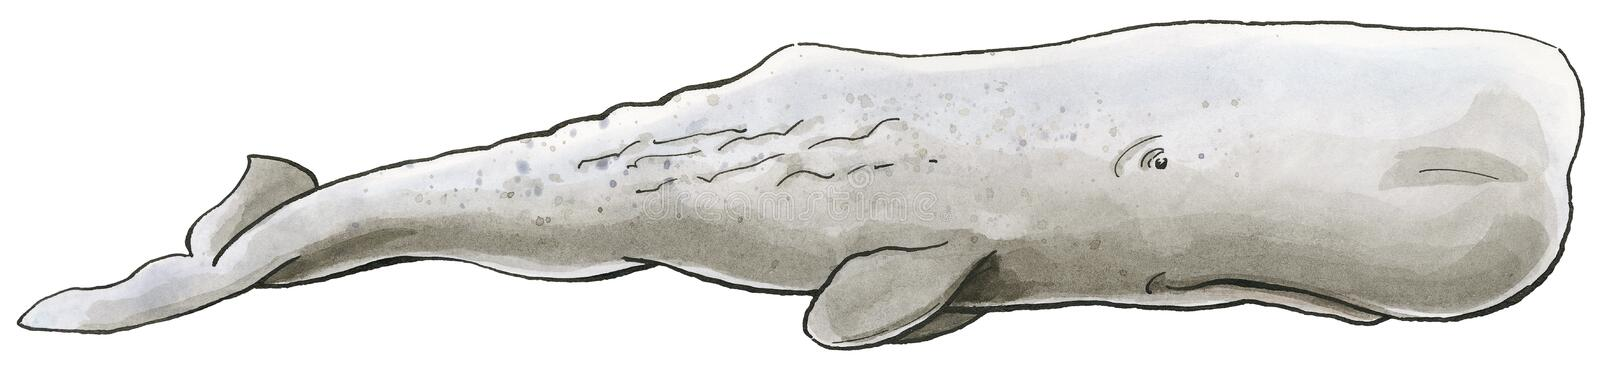 Hand-drawn illustration of a Sperm Whale Physeter macrocephalus royalty free illustration